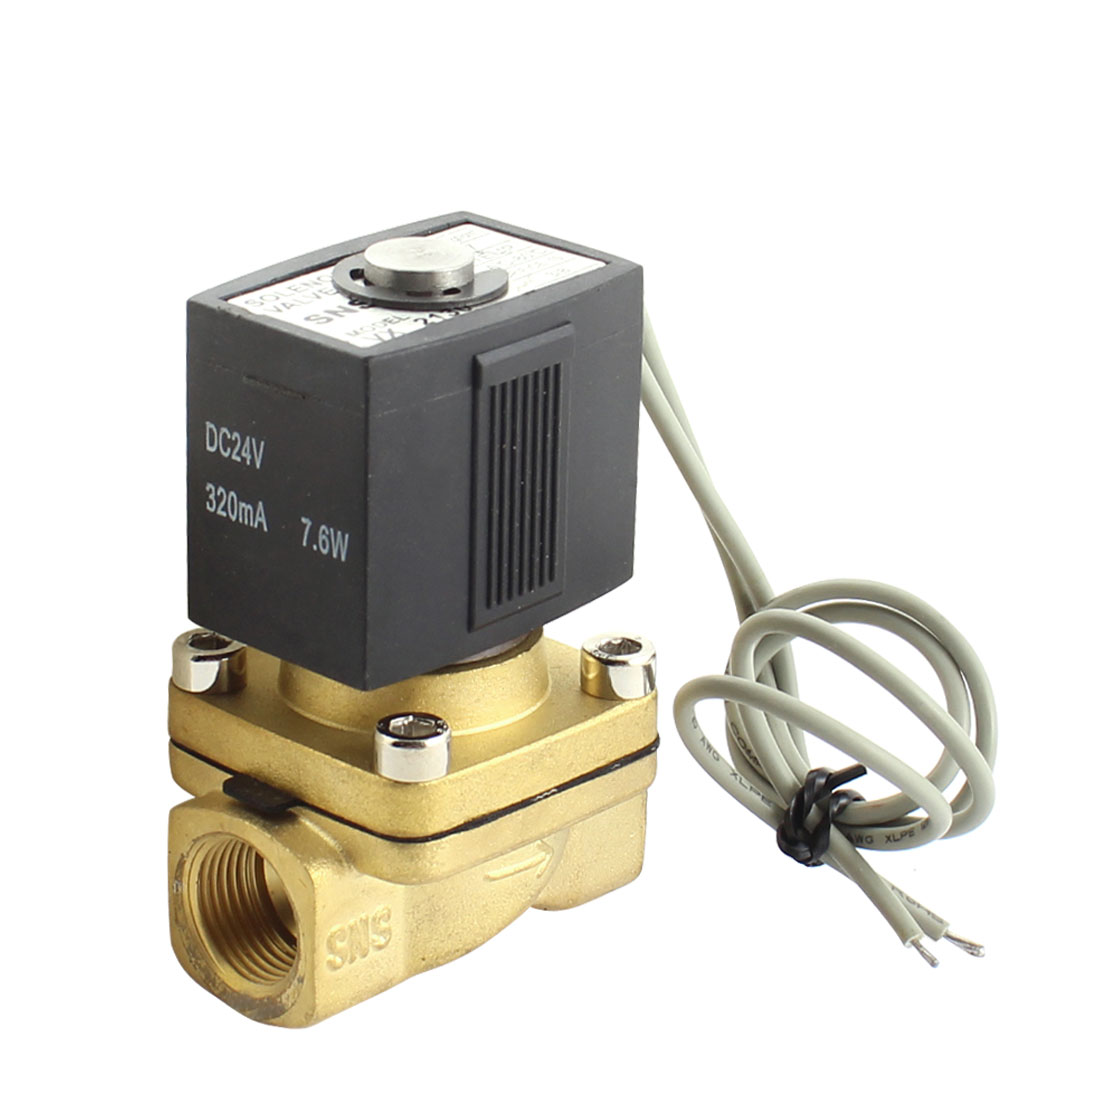 DC24V 320mA 7.6W 3/8PT Female Thread 2-Wired Brass 2 Way Water Gas Electric Solenoid Valve